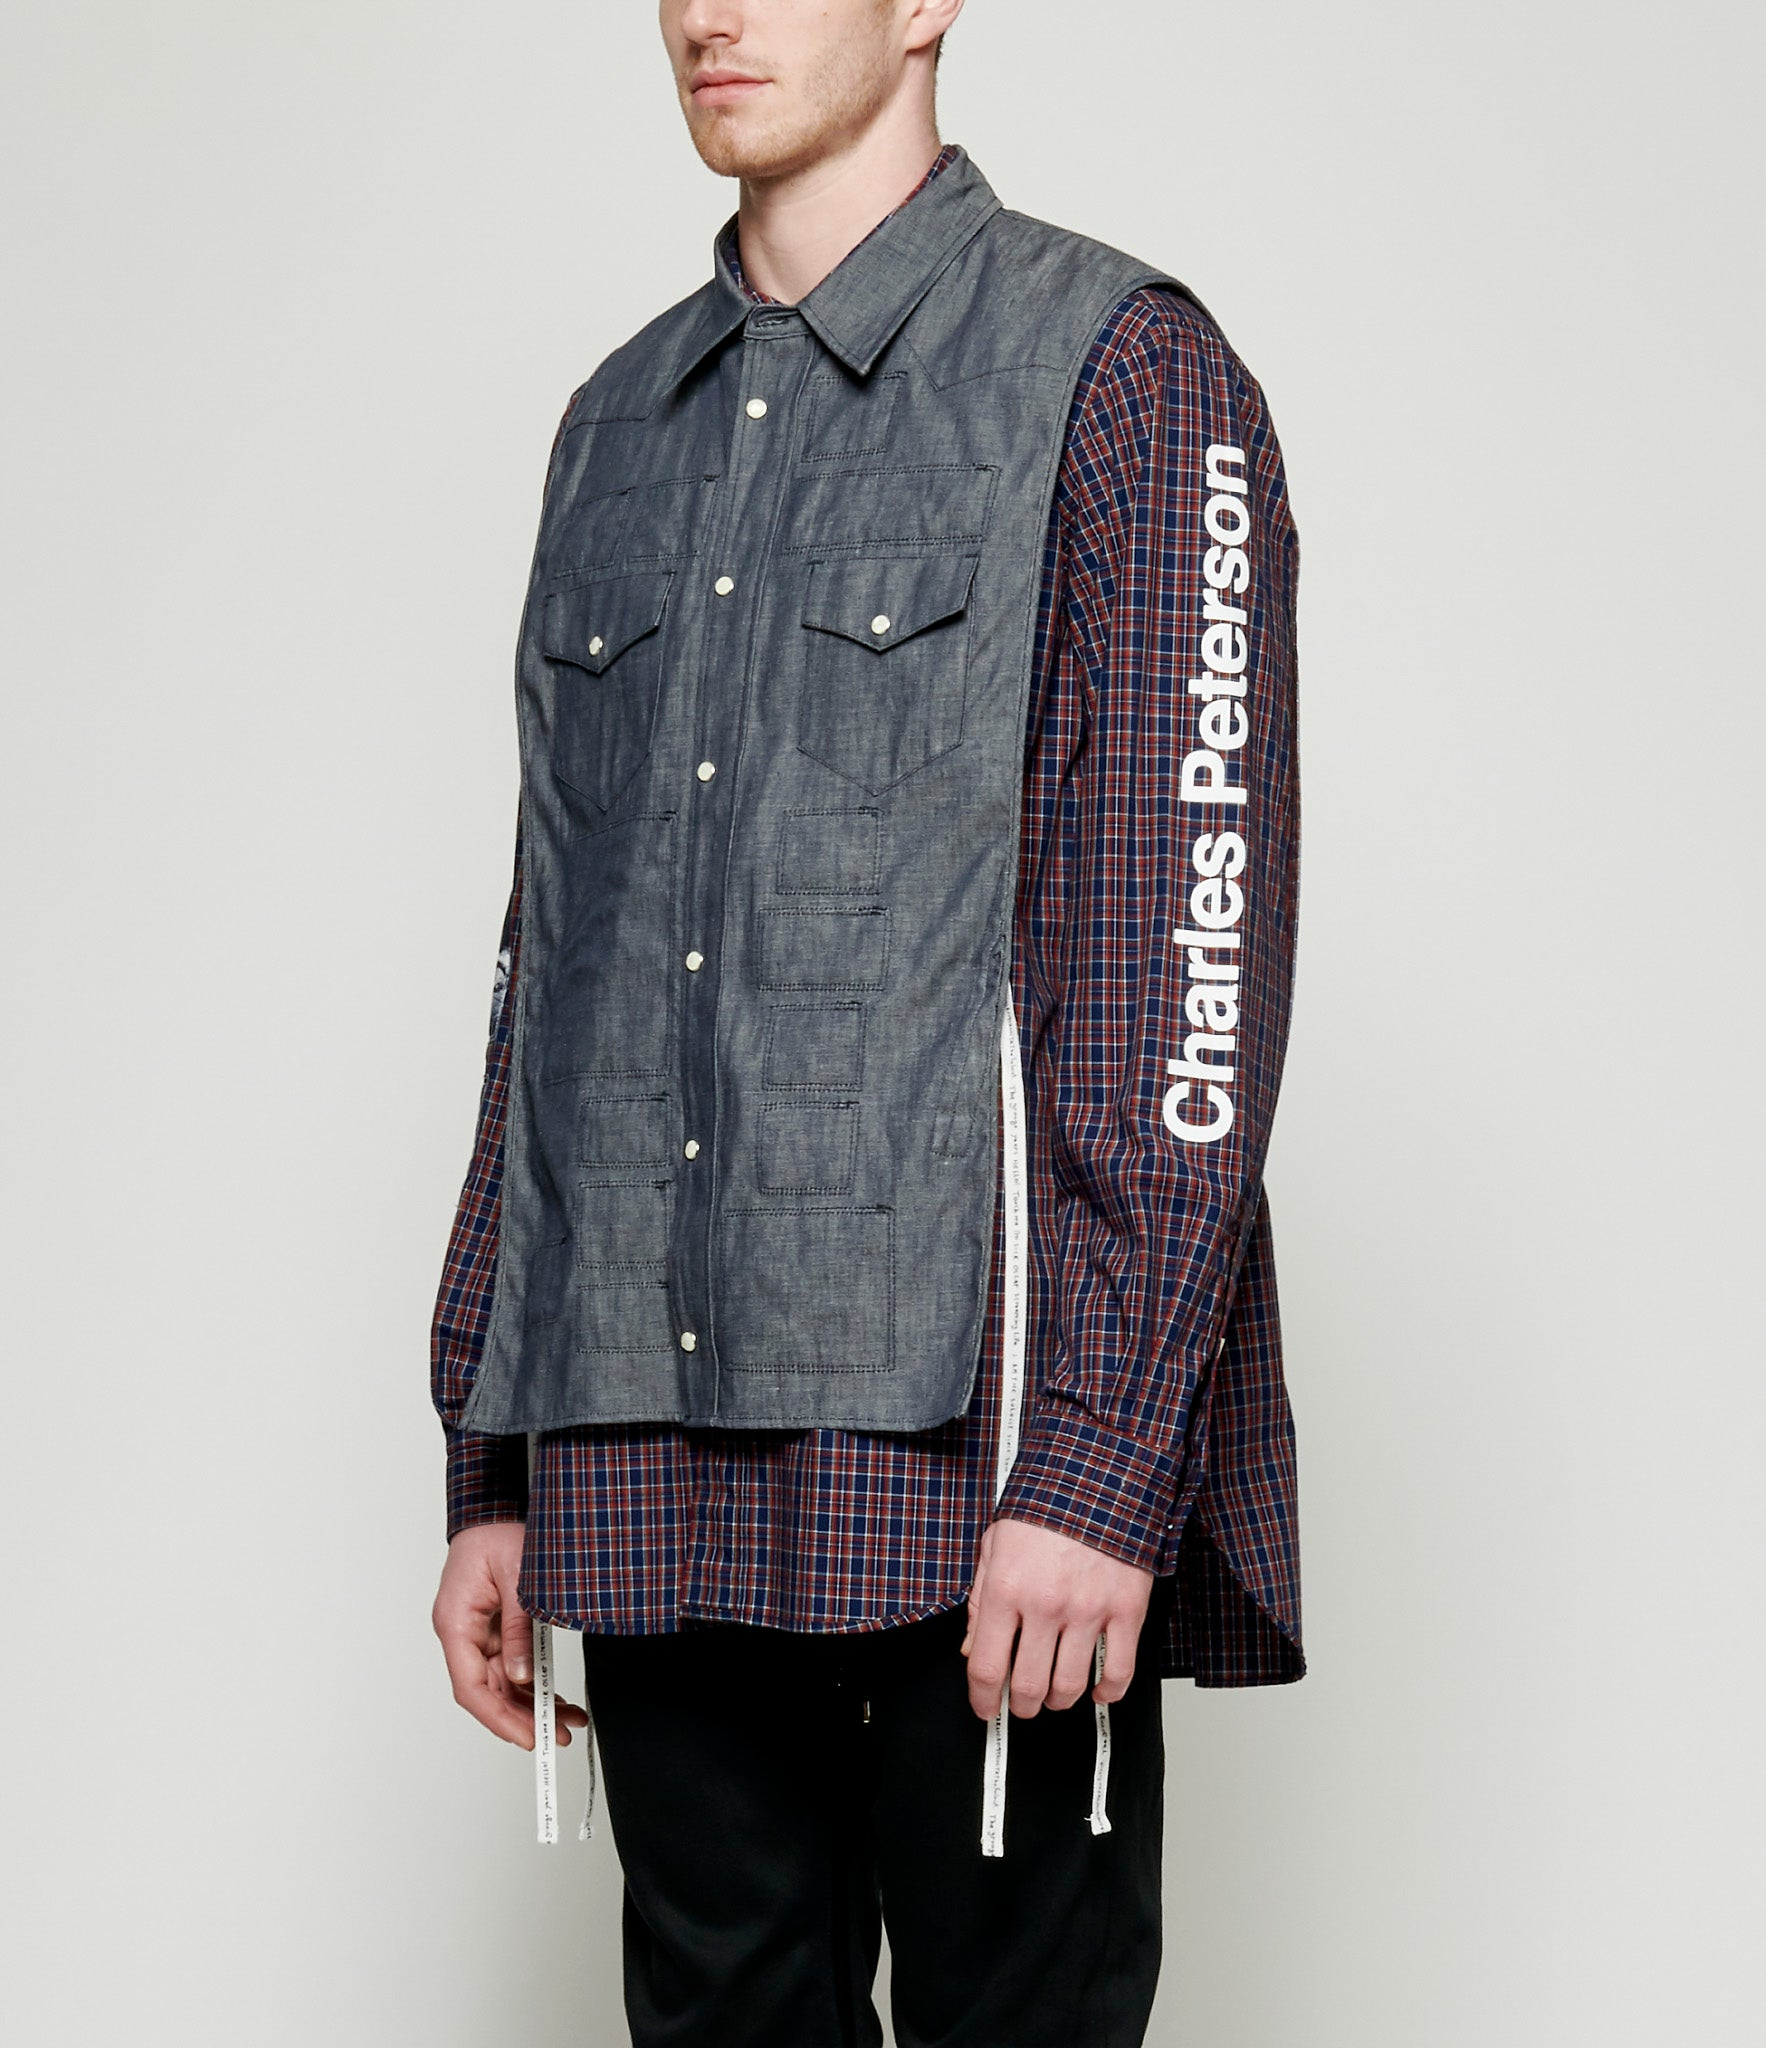 TAKAHIROMIYASHITA TheSoloist Touch Me I'm Sick Denim Layered Tartan Check Western Shirt